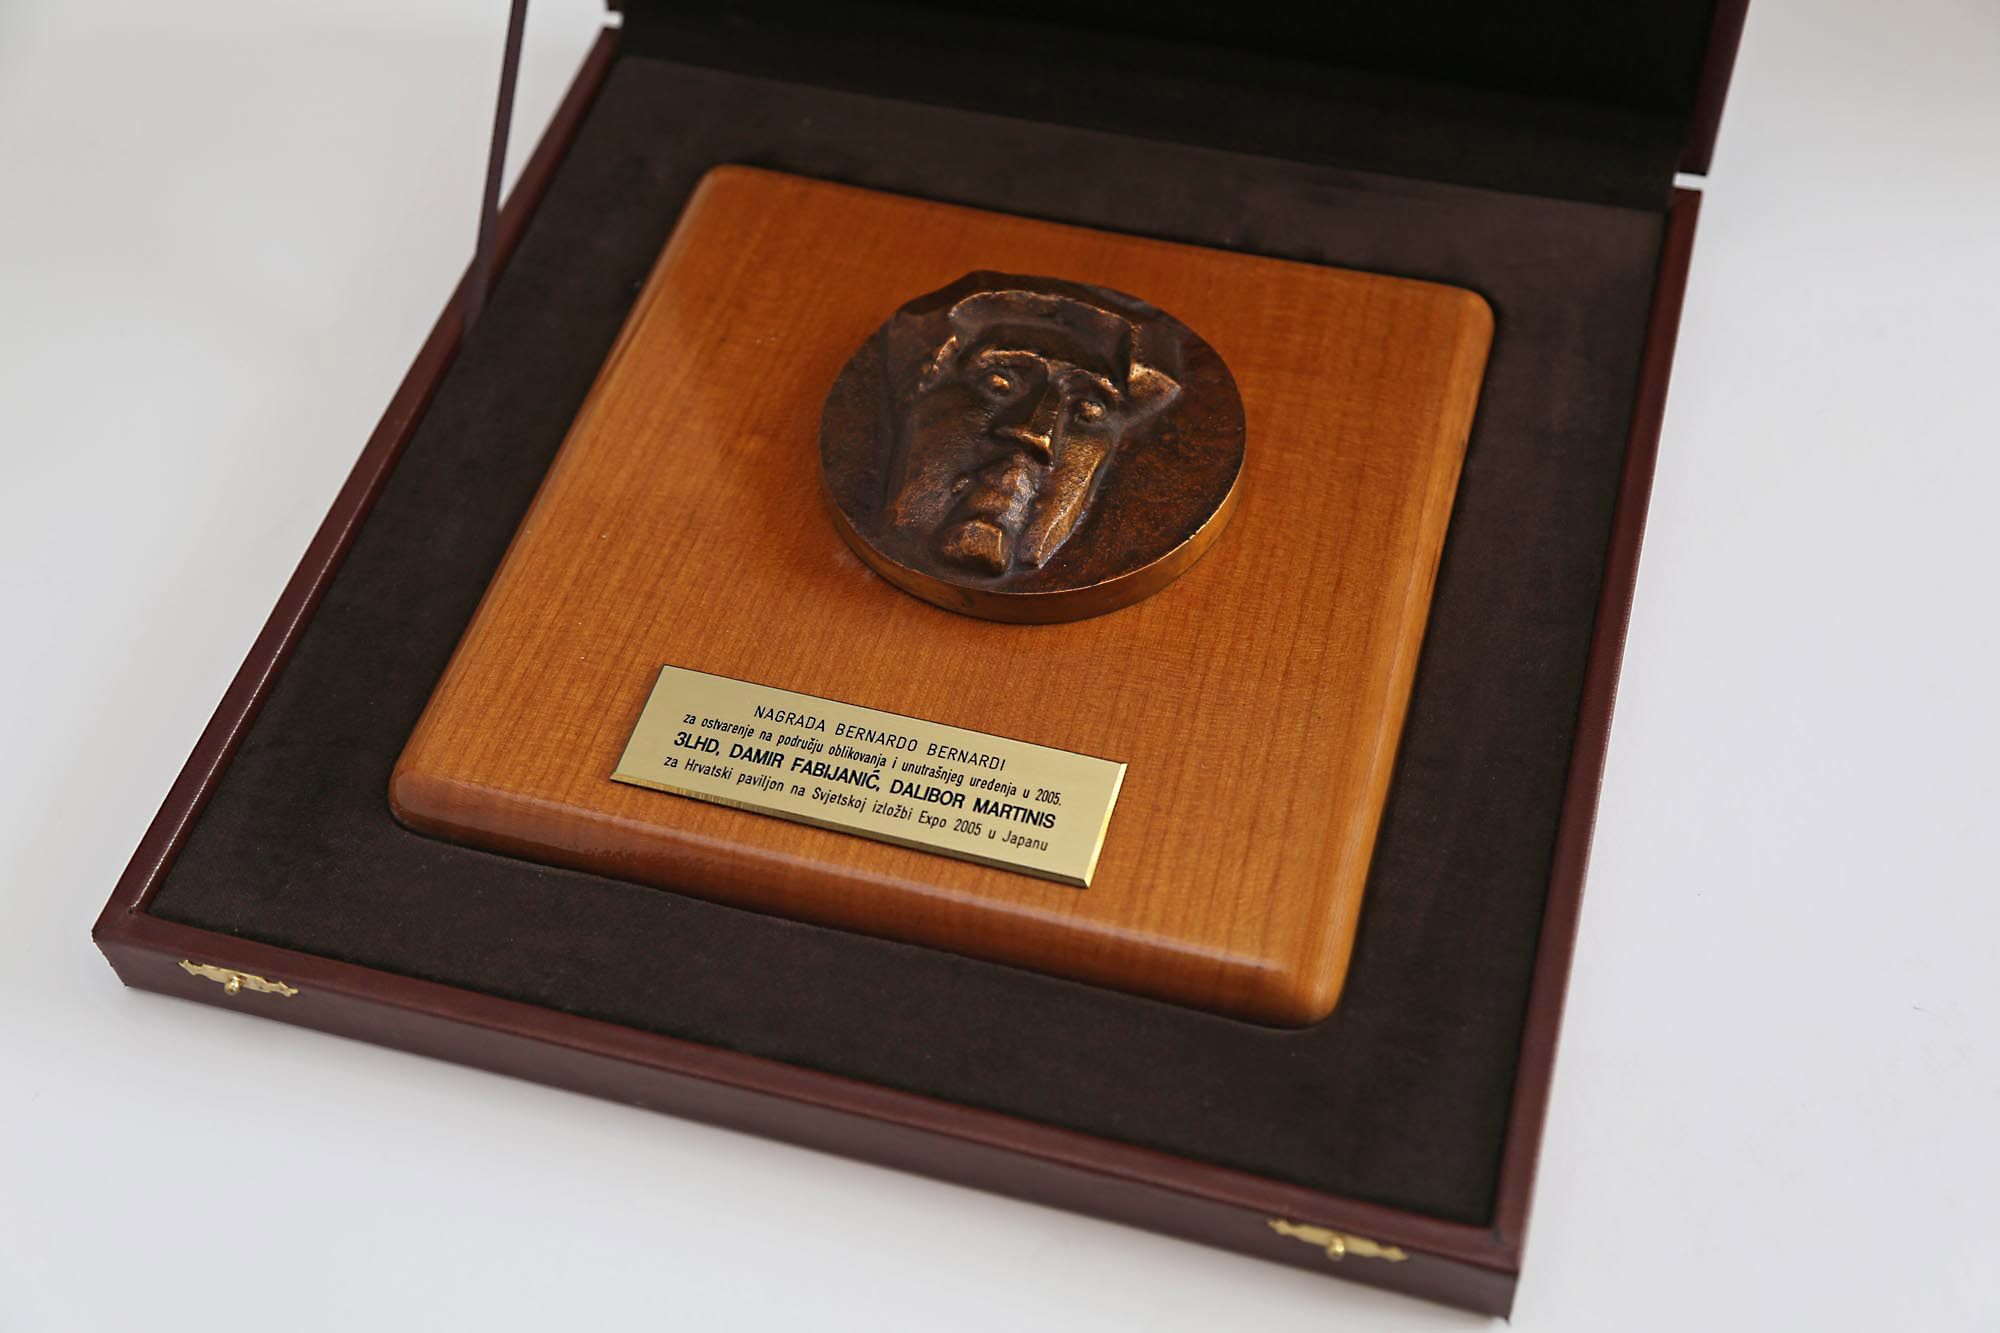 The Award from the <em>Croatian Association of Architects</em> for EXPO 2005, Aichi (Japan)